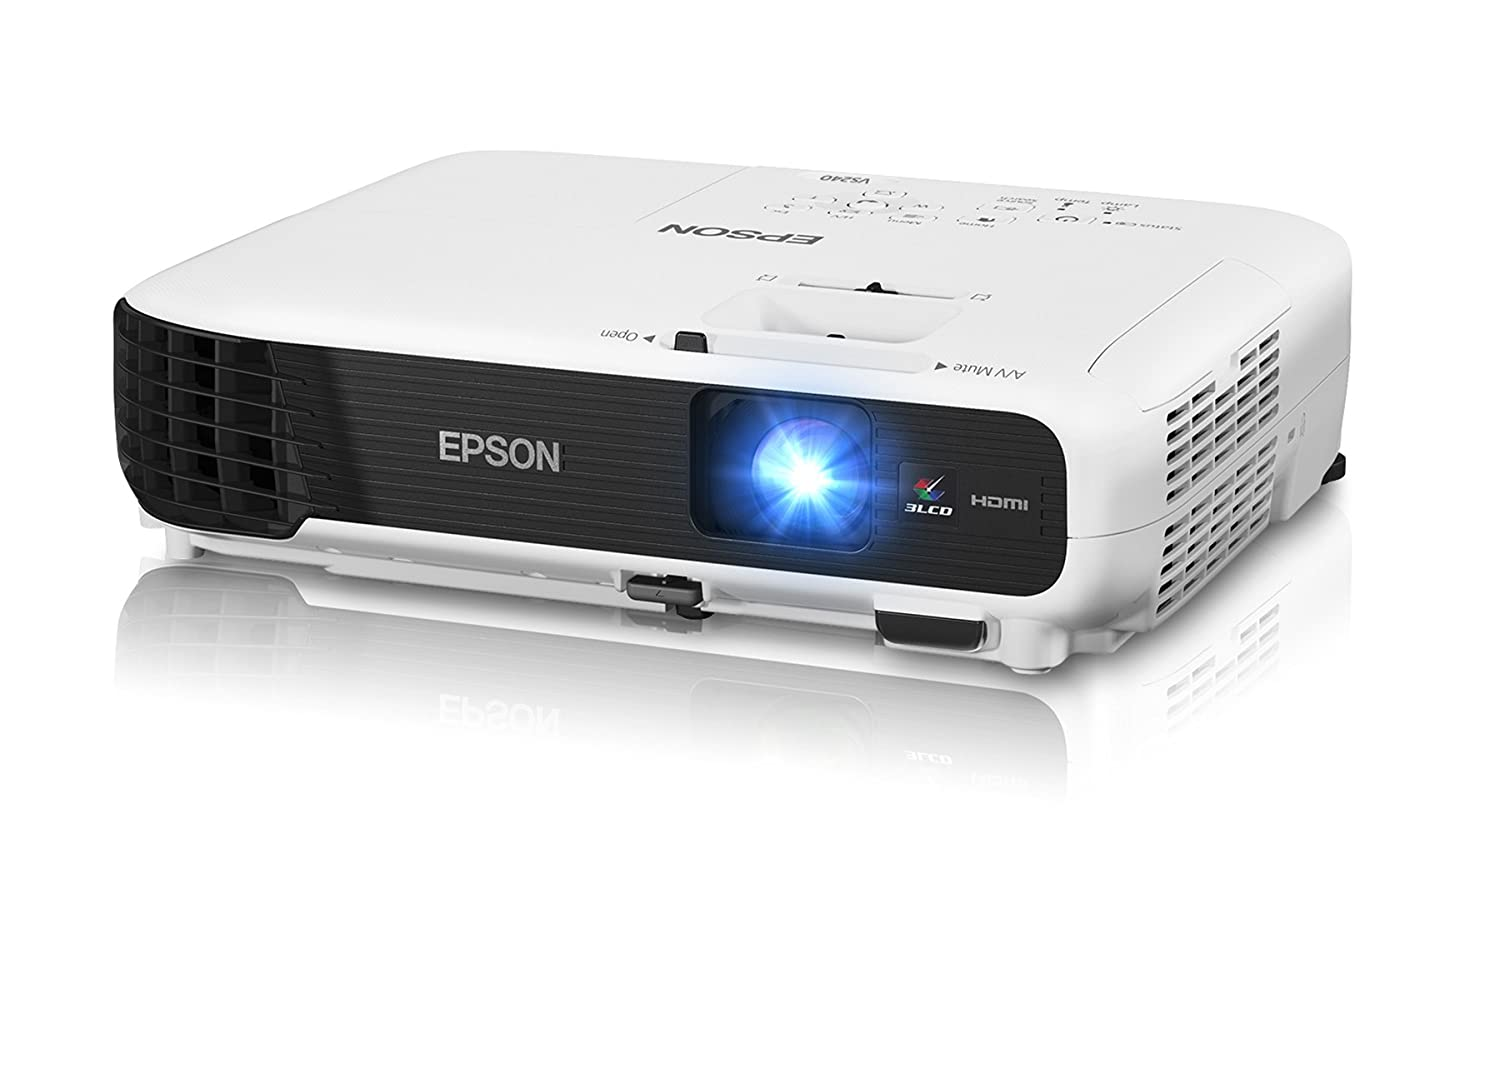 Epson VS240 SVGA 3LCD Projector 3000 Lumens Color Brightness